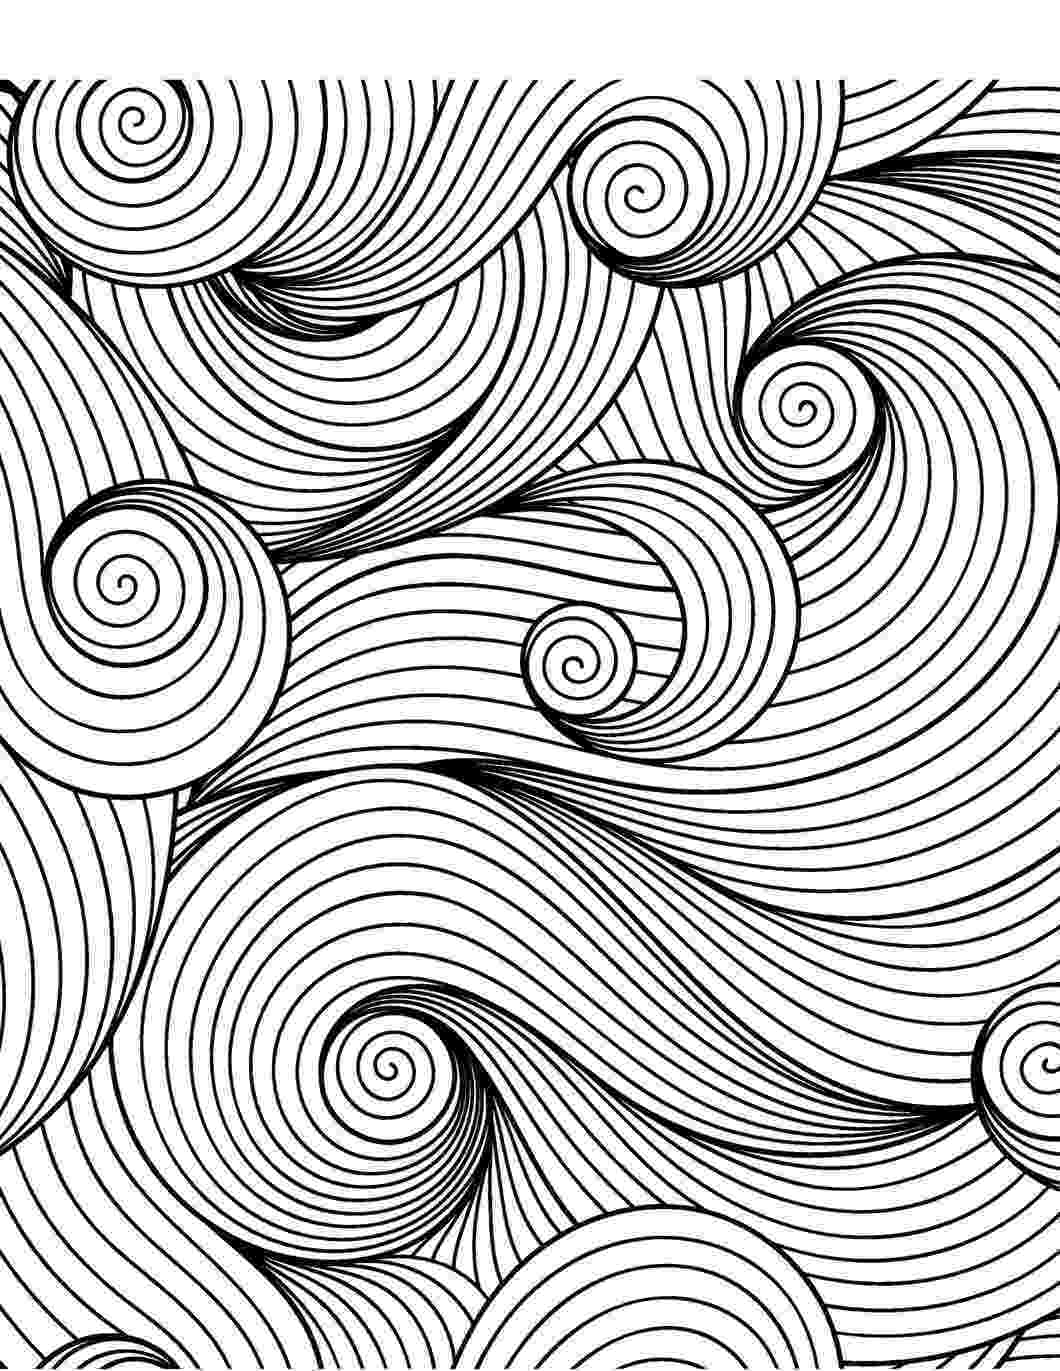 patterned coloring pages adult coloring pages to print to download and print for free coloring patterned pages